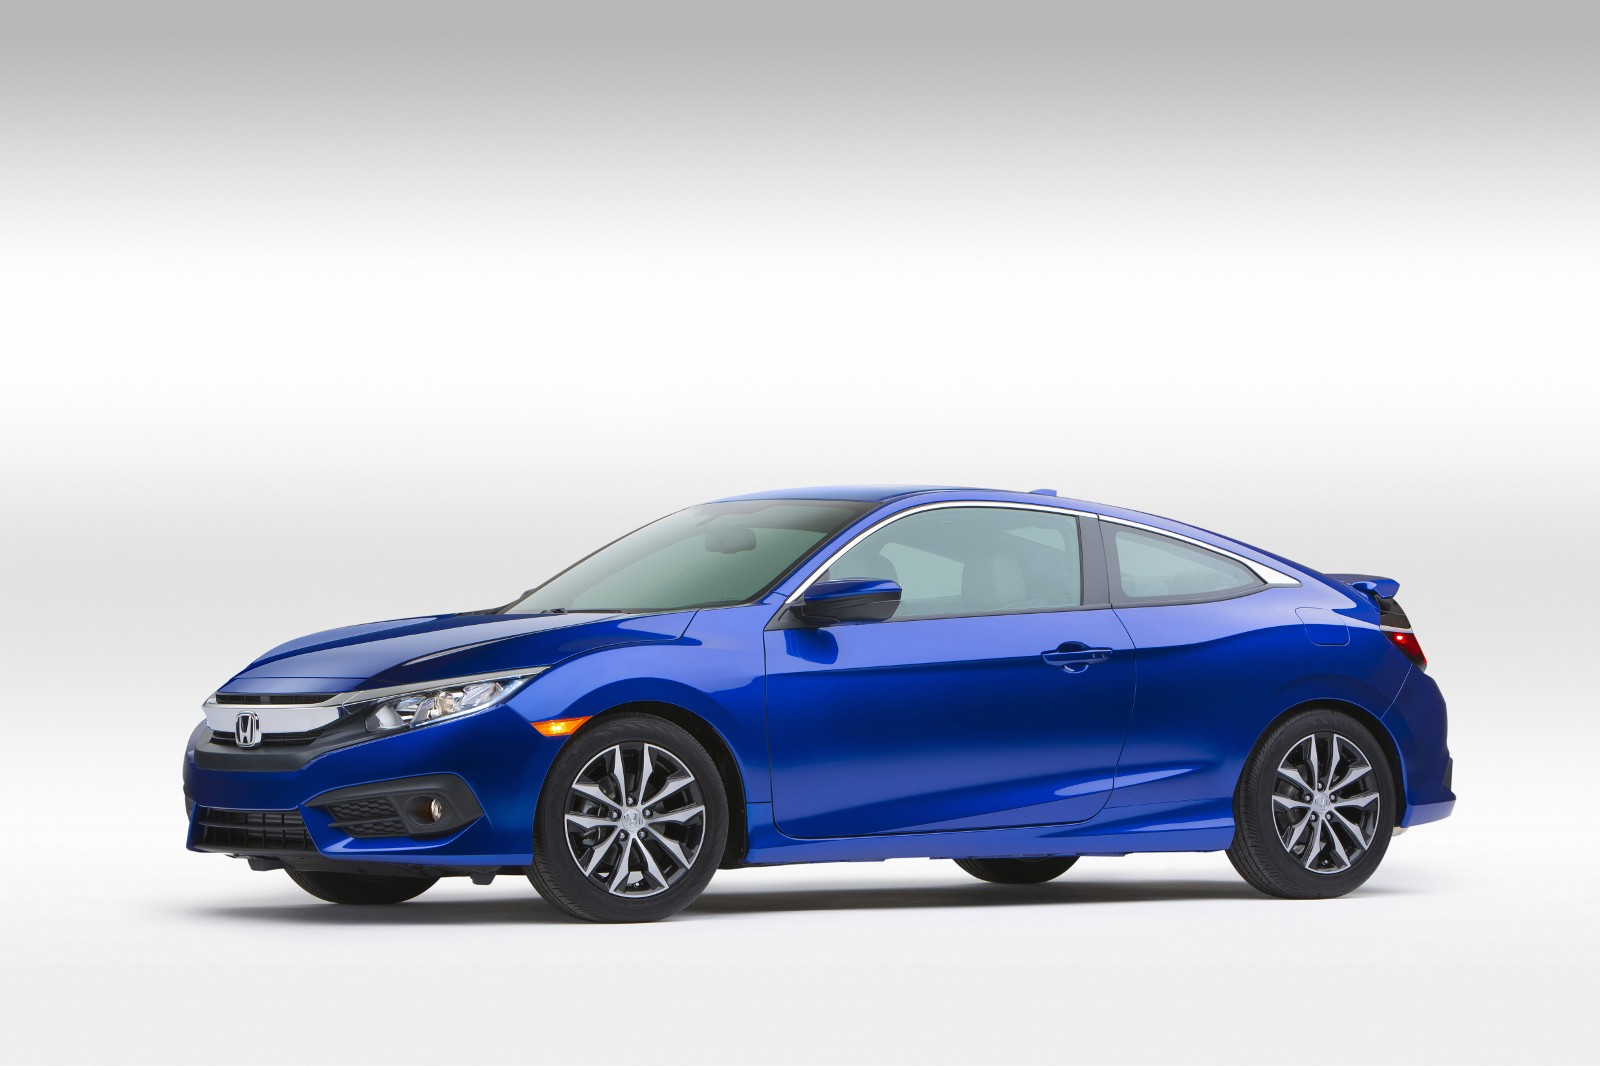 2016 honda civic coupe revealed with bigger cabin turbo engine autoevolution. Black Bedroom Furniture Sets. Home Design Ideas